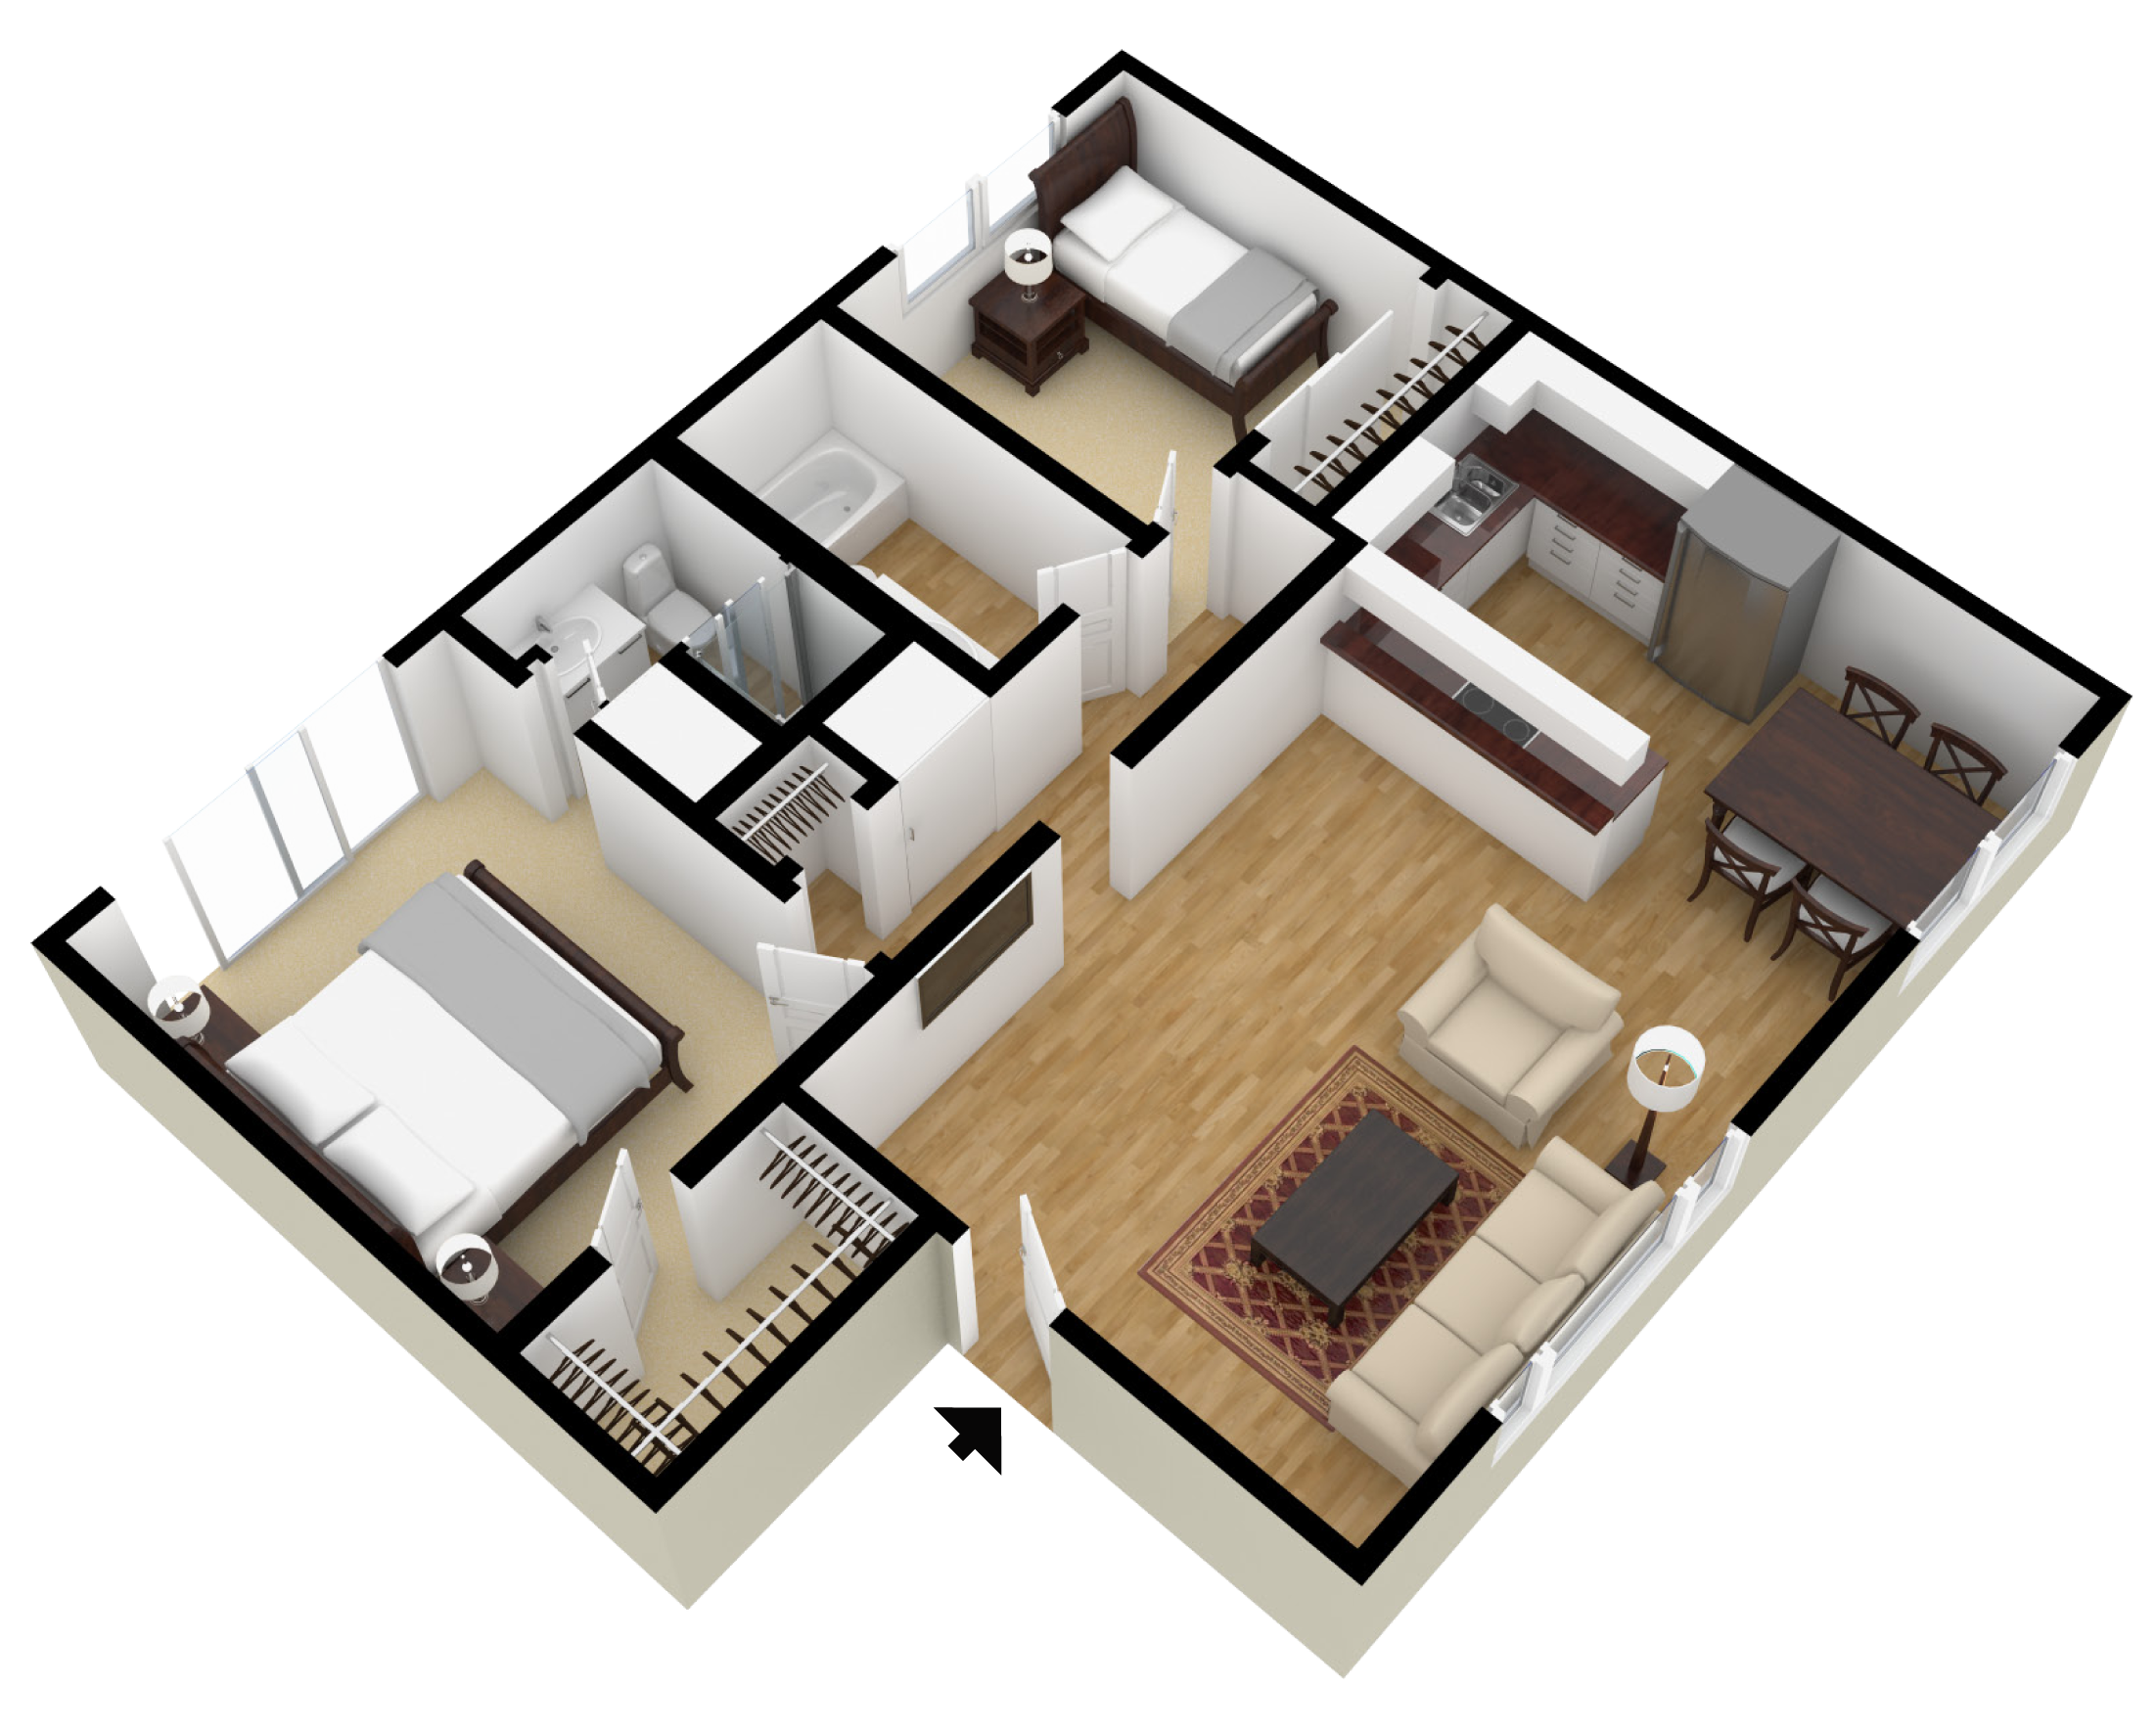 Studio Bedroom Floor Plans City Plaza Apartments